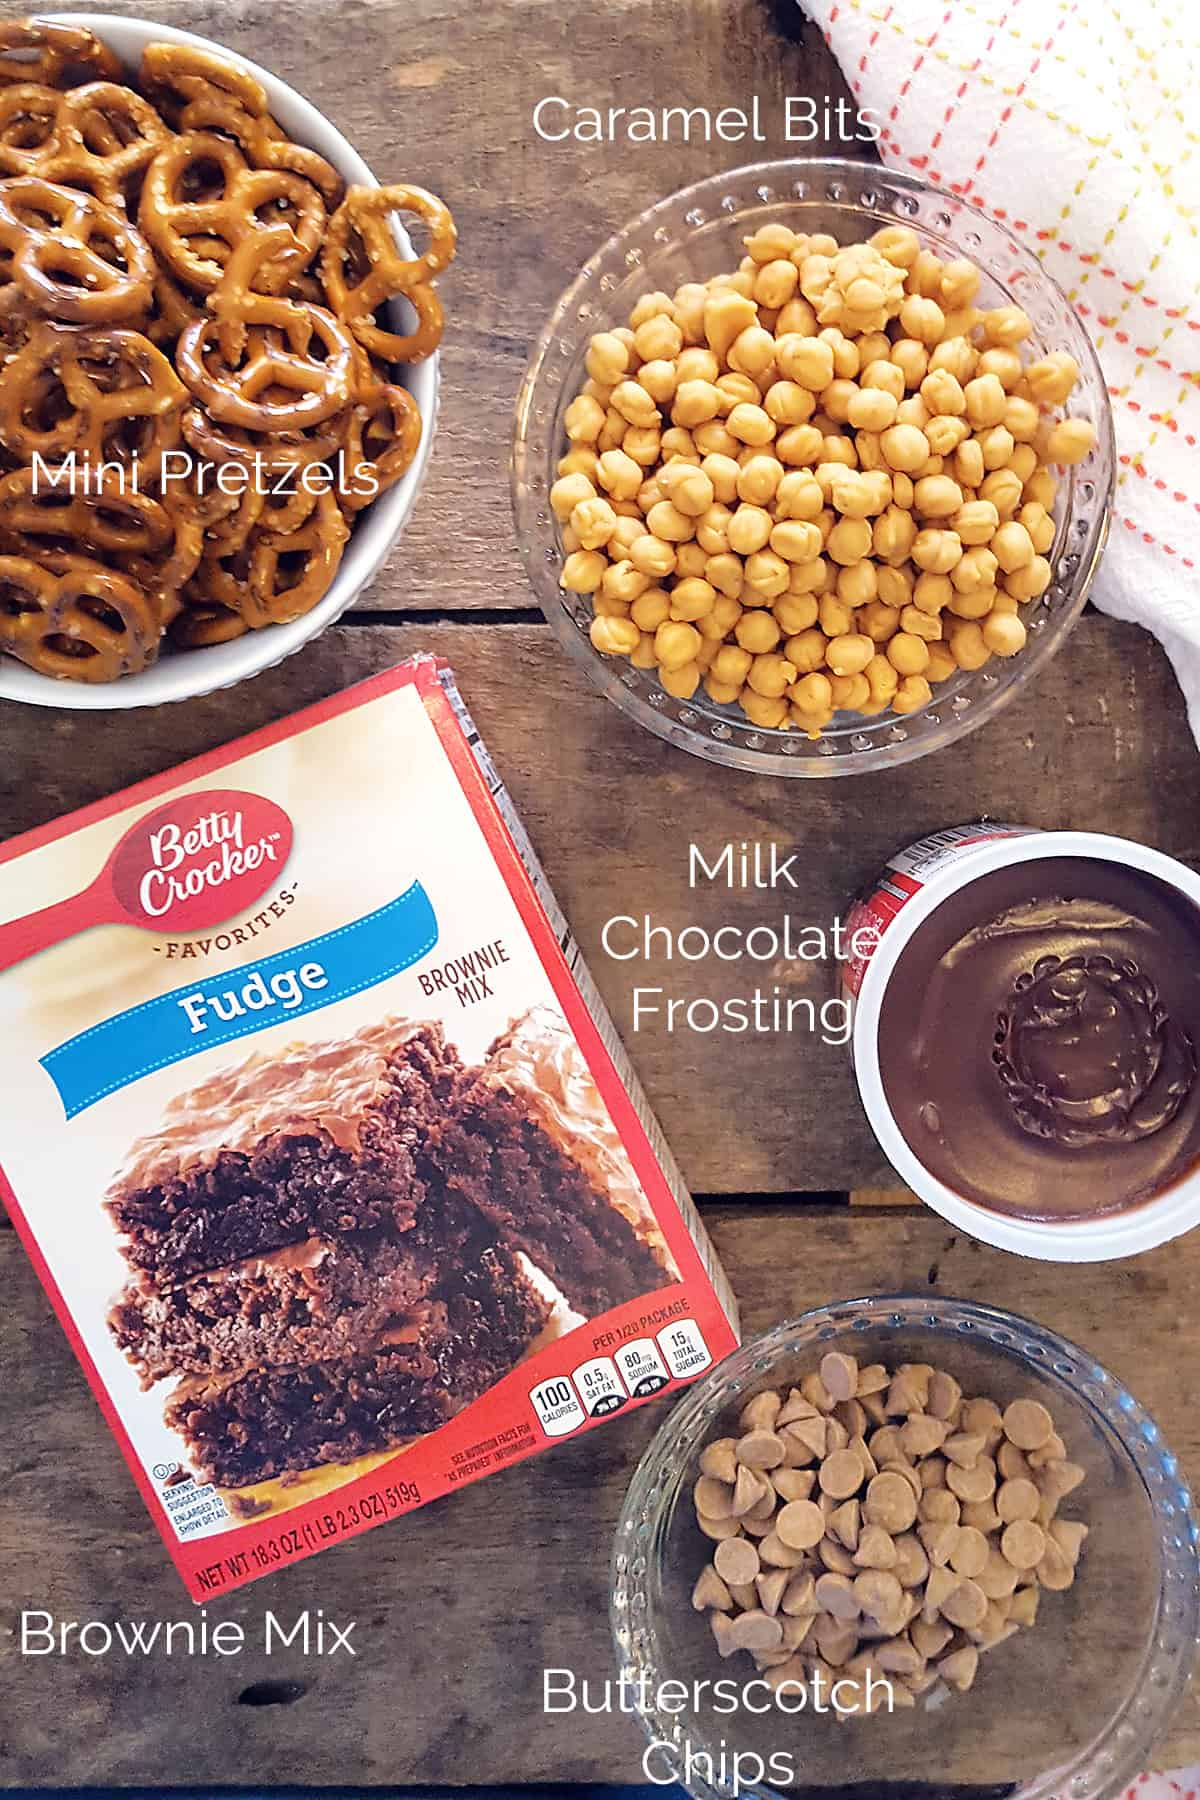 Ingredients needed for Easy Caramel Pretzel Brownies -- mini pretzels, caramel bits, milk chocolate frosting, brownie mix, butterscotch chips.